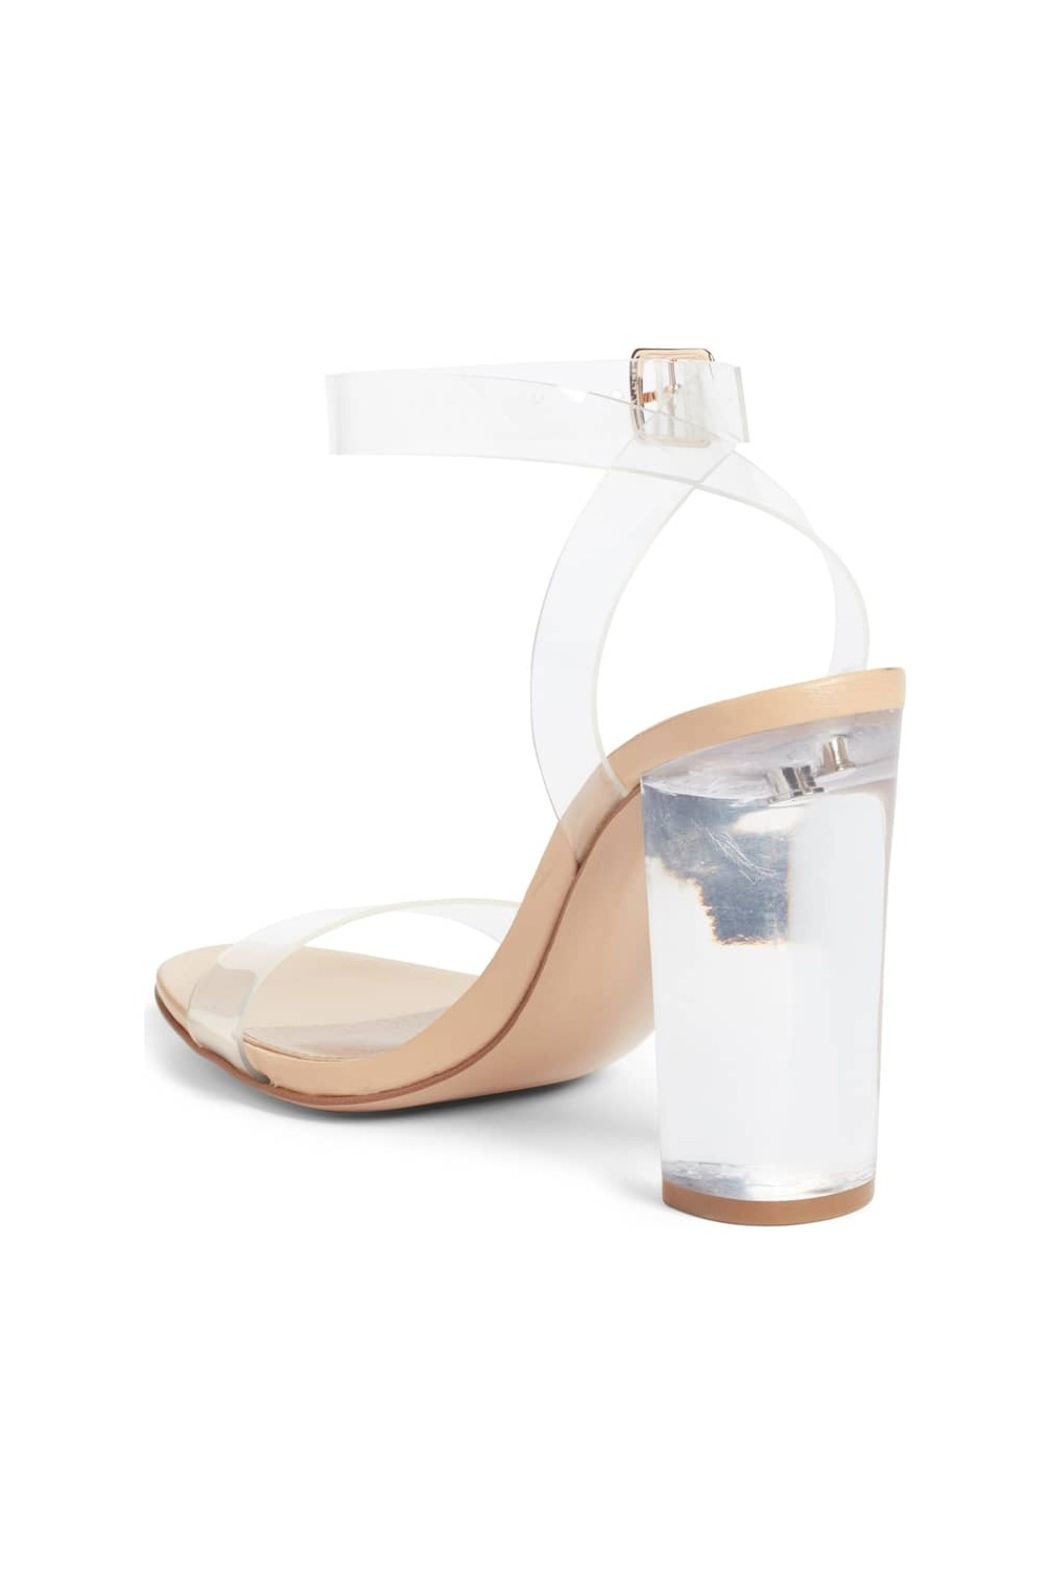 b7c44d1c94f Steve Madden Camille Clear Sandal from Texas by y i clothing ...